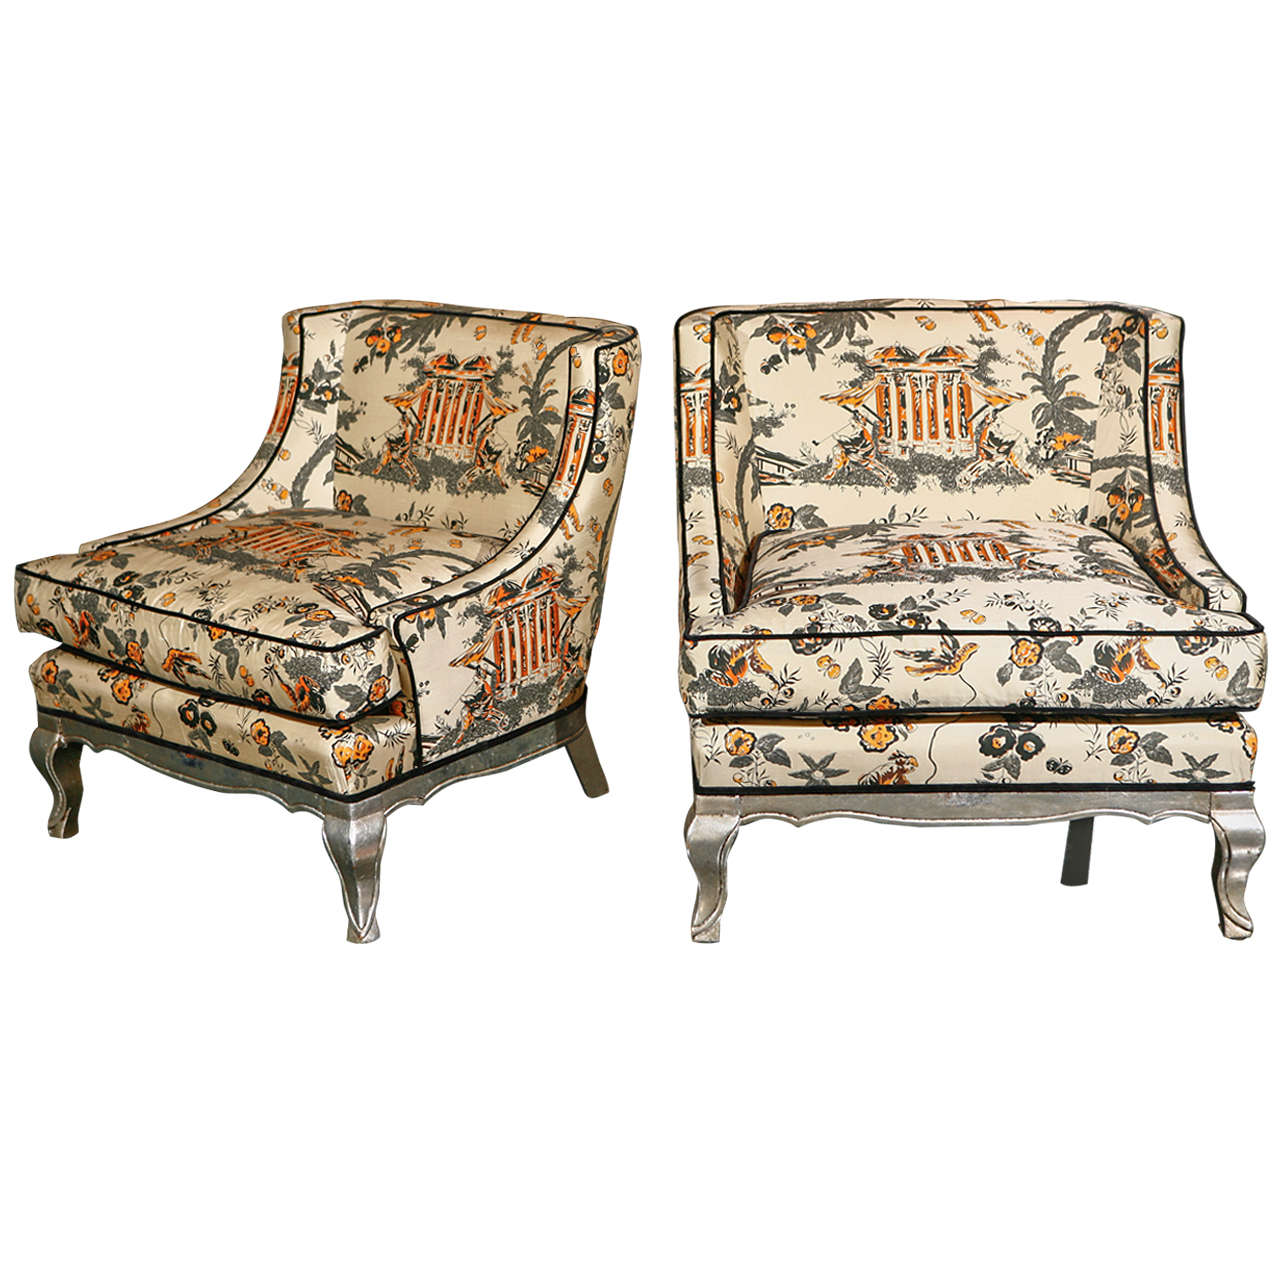 Pair Of Art Deco Chinoiserie Chairs At 1stdibs